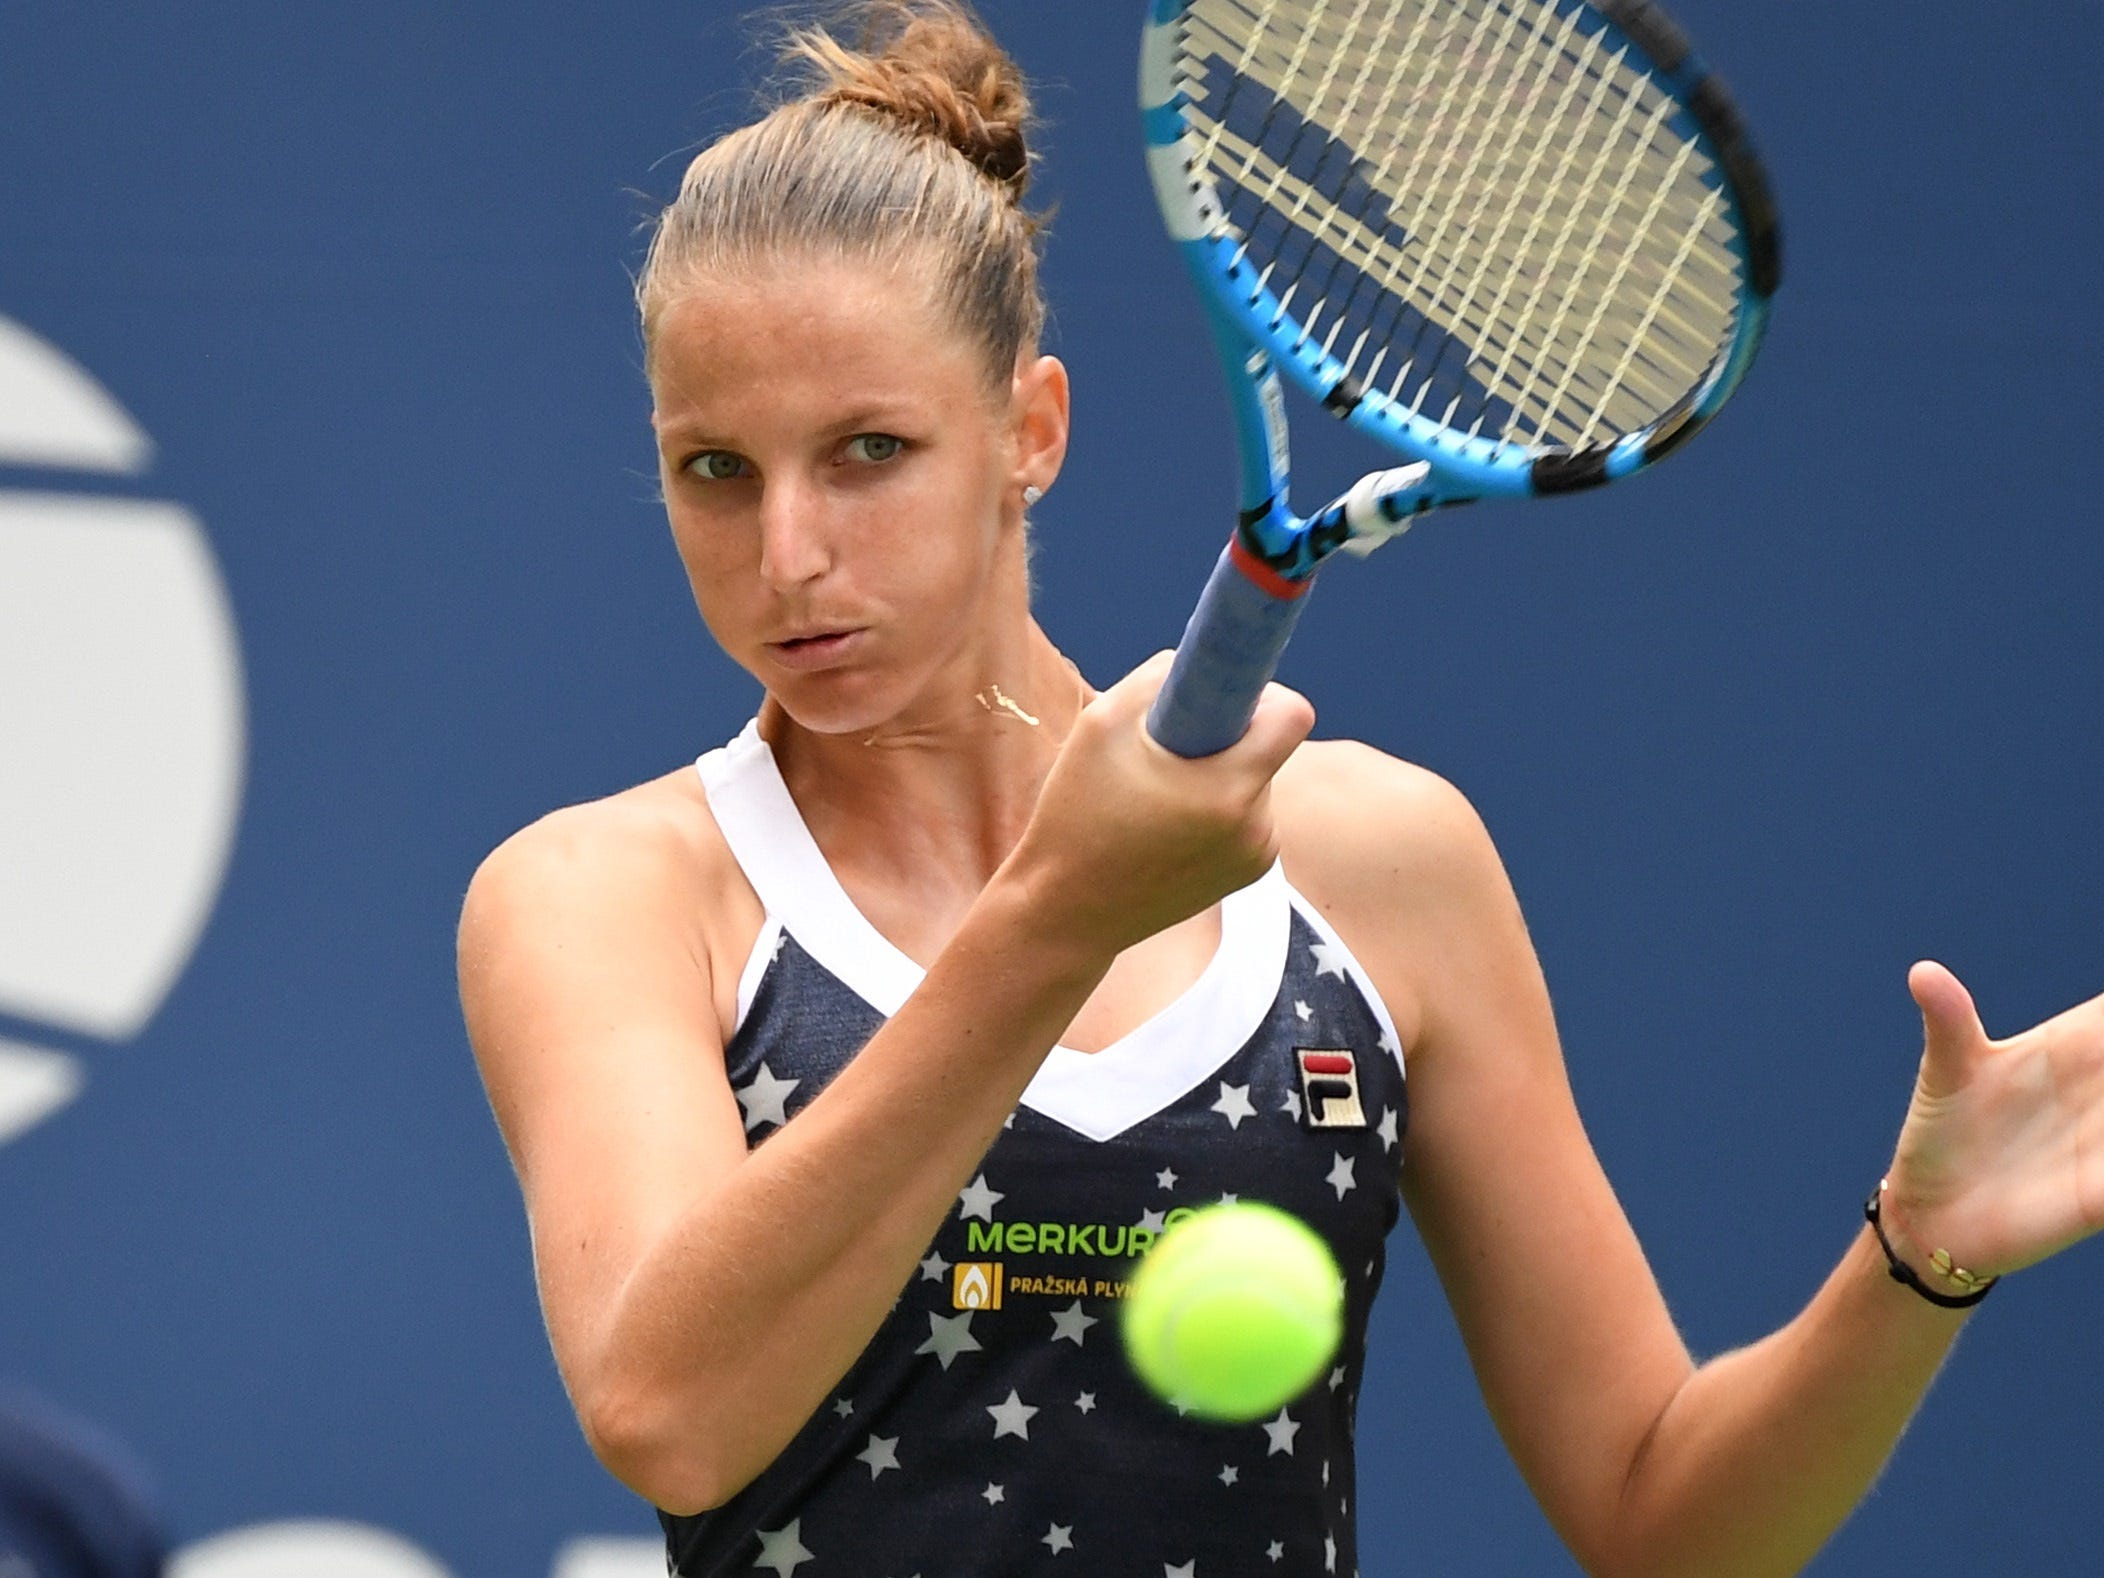 Karolina Pliskova plays a forehand return to Ashleigh Barty.